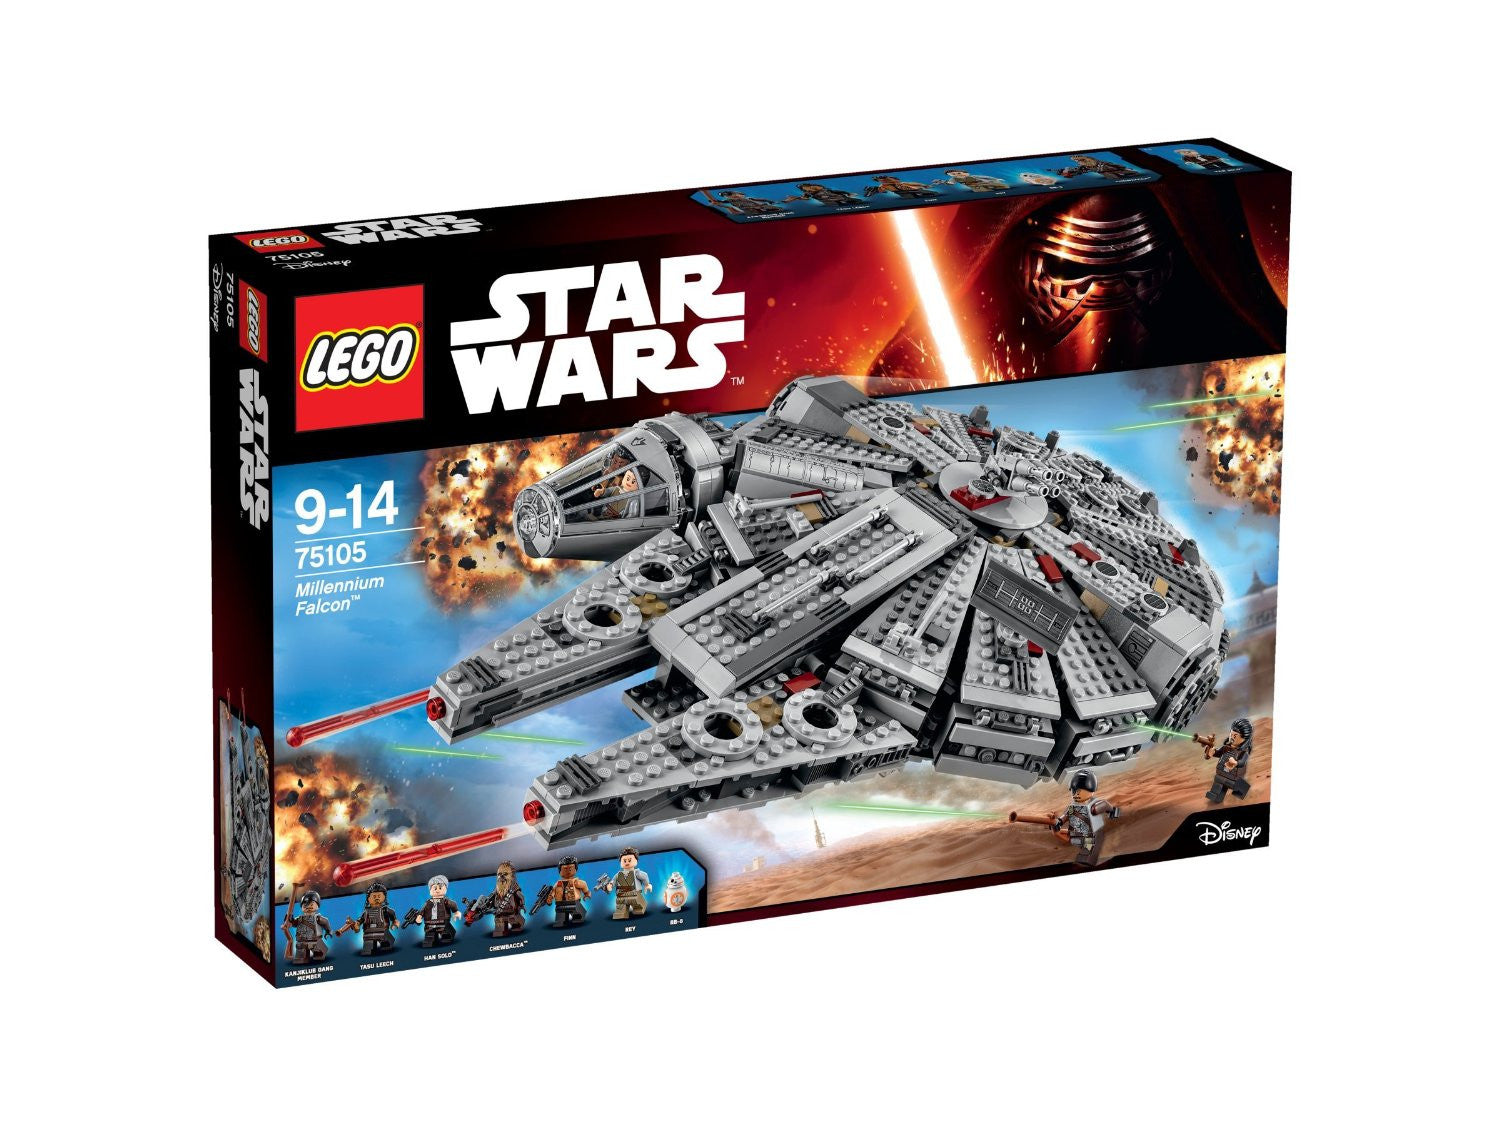 Star Wars Millennium Falcon by Lego -Lego - India - www.superherotoystore.com